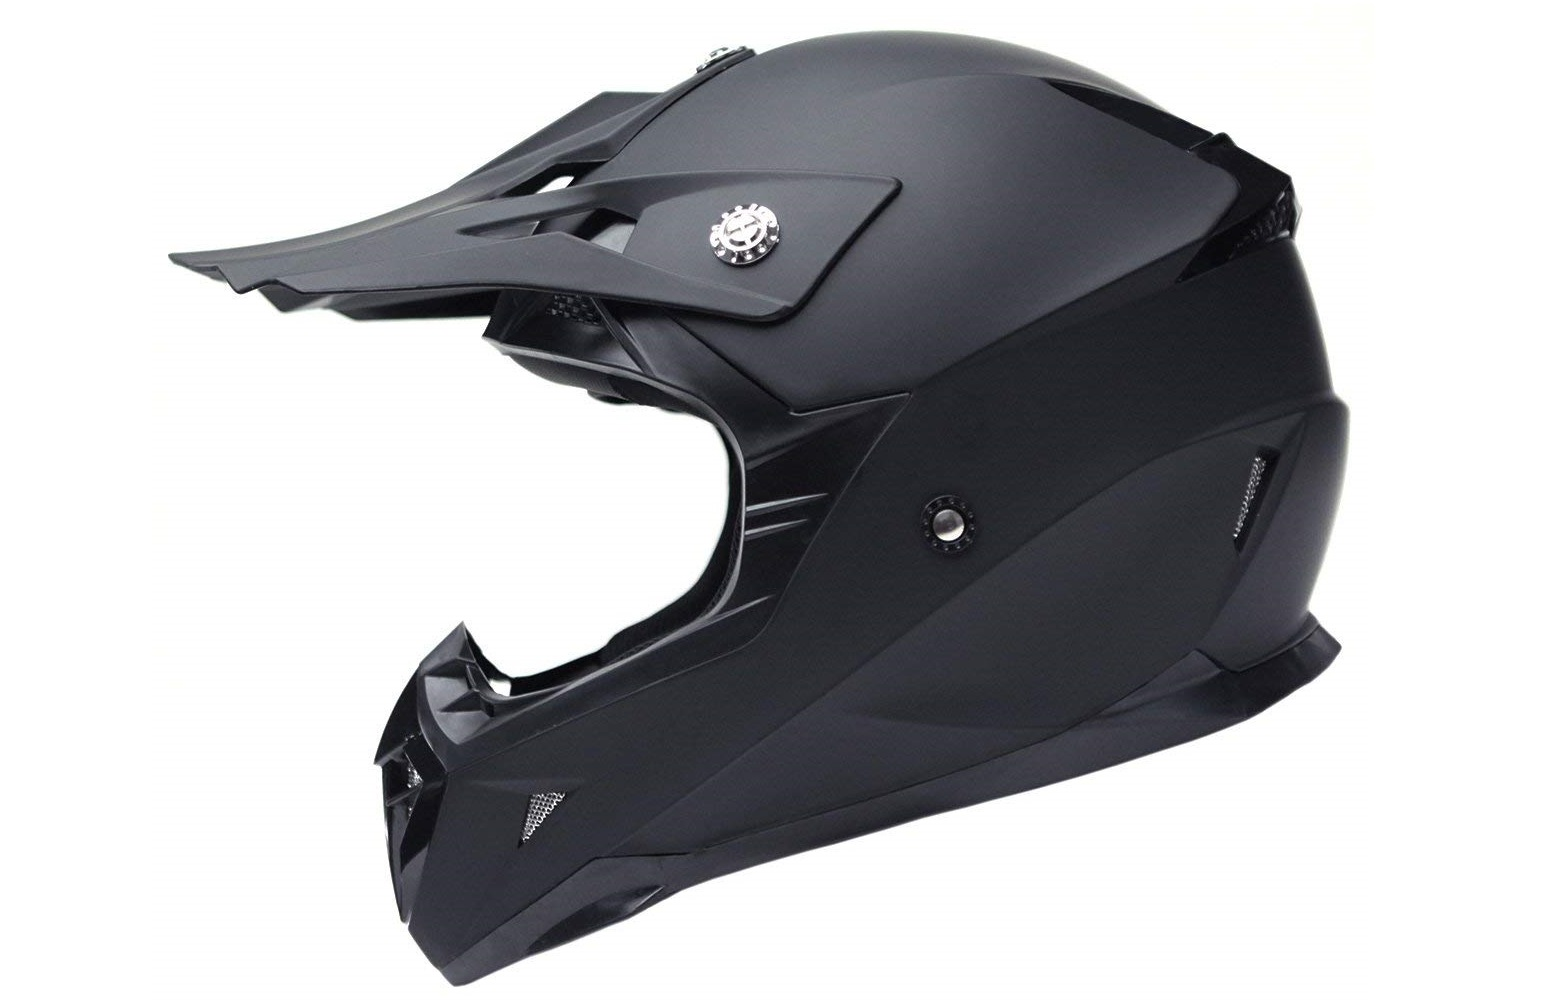 The Best Motorcycle Helmets in 2020 Review